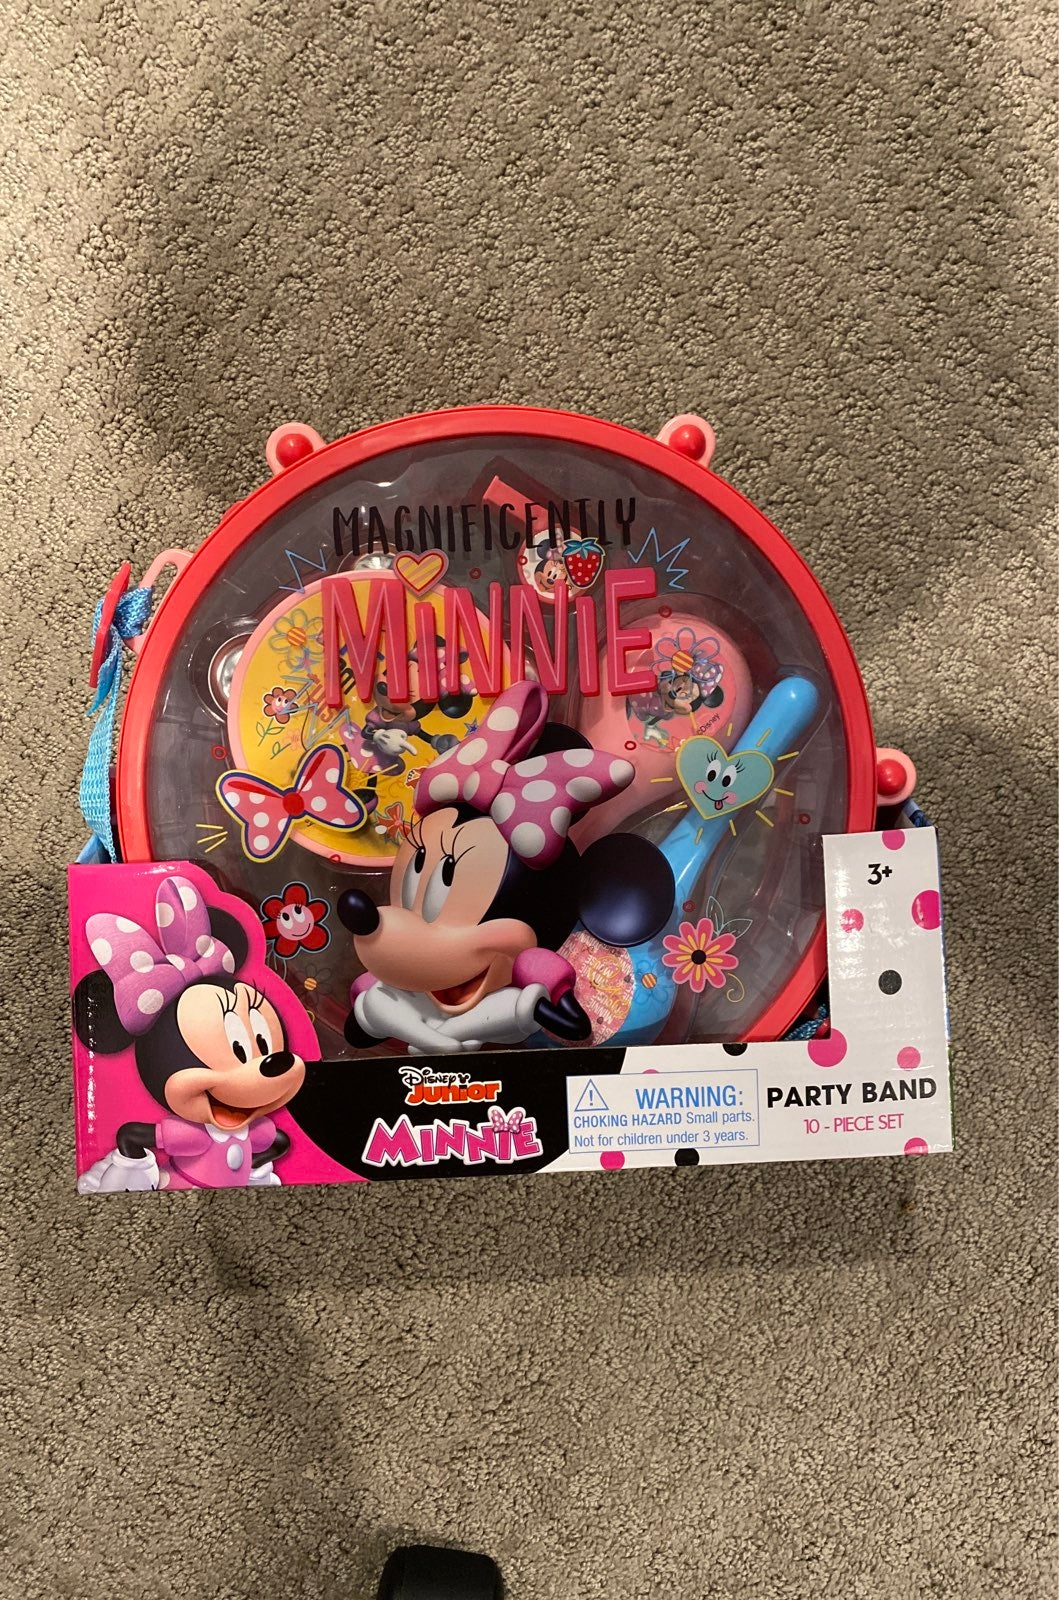 Minnie Mouse party band